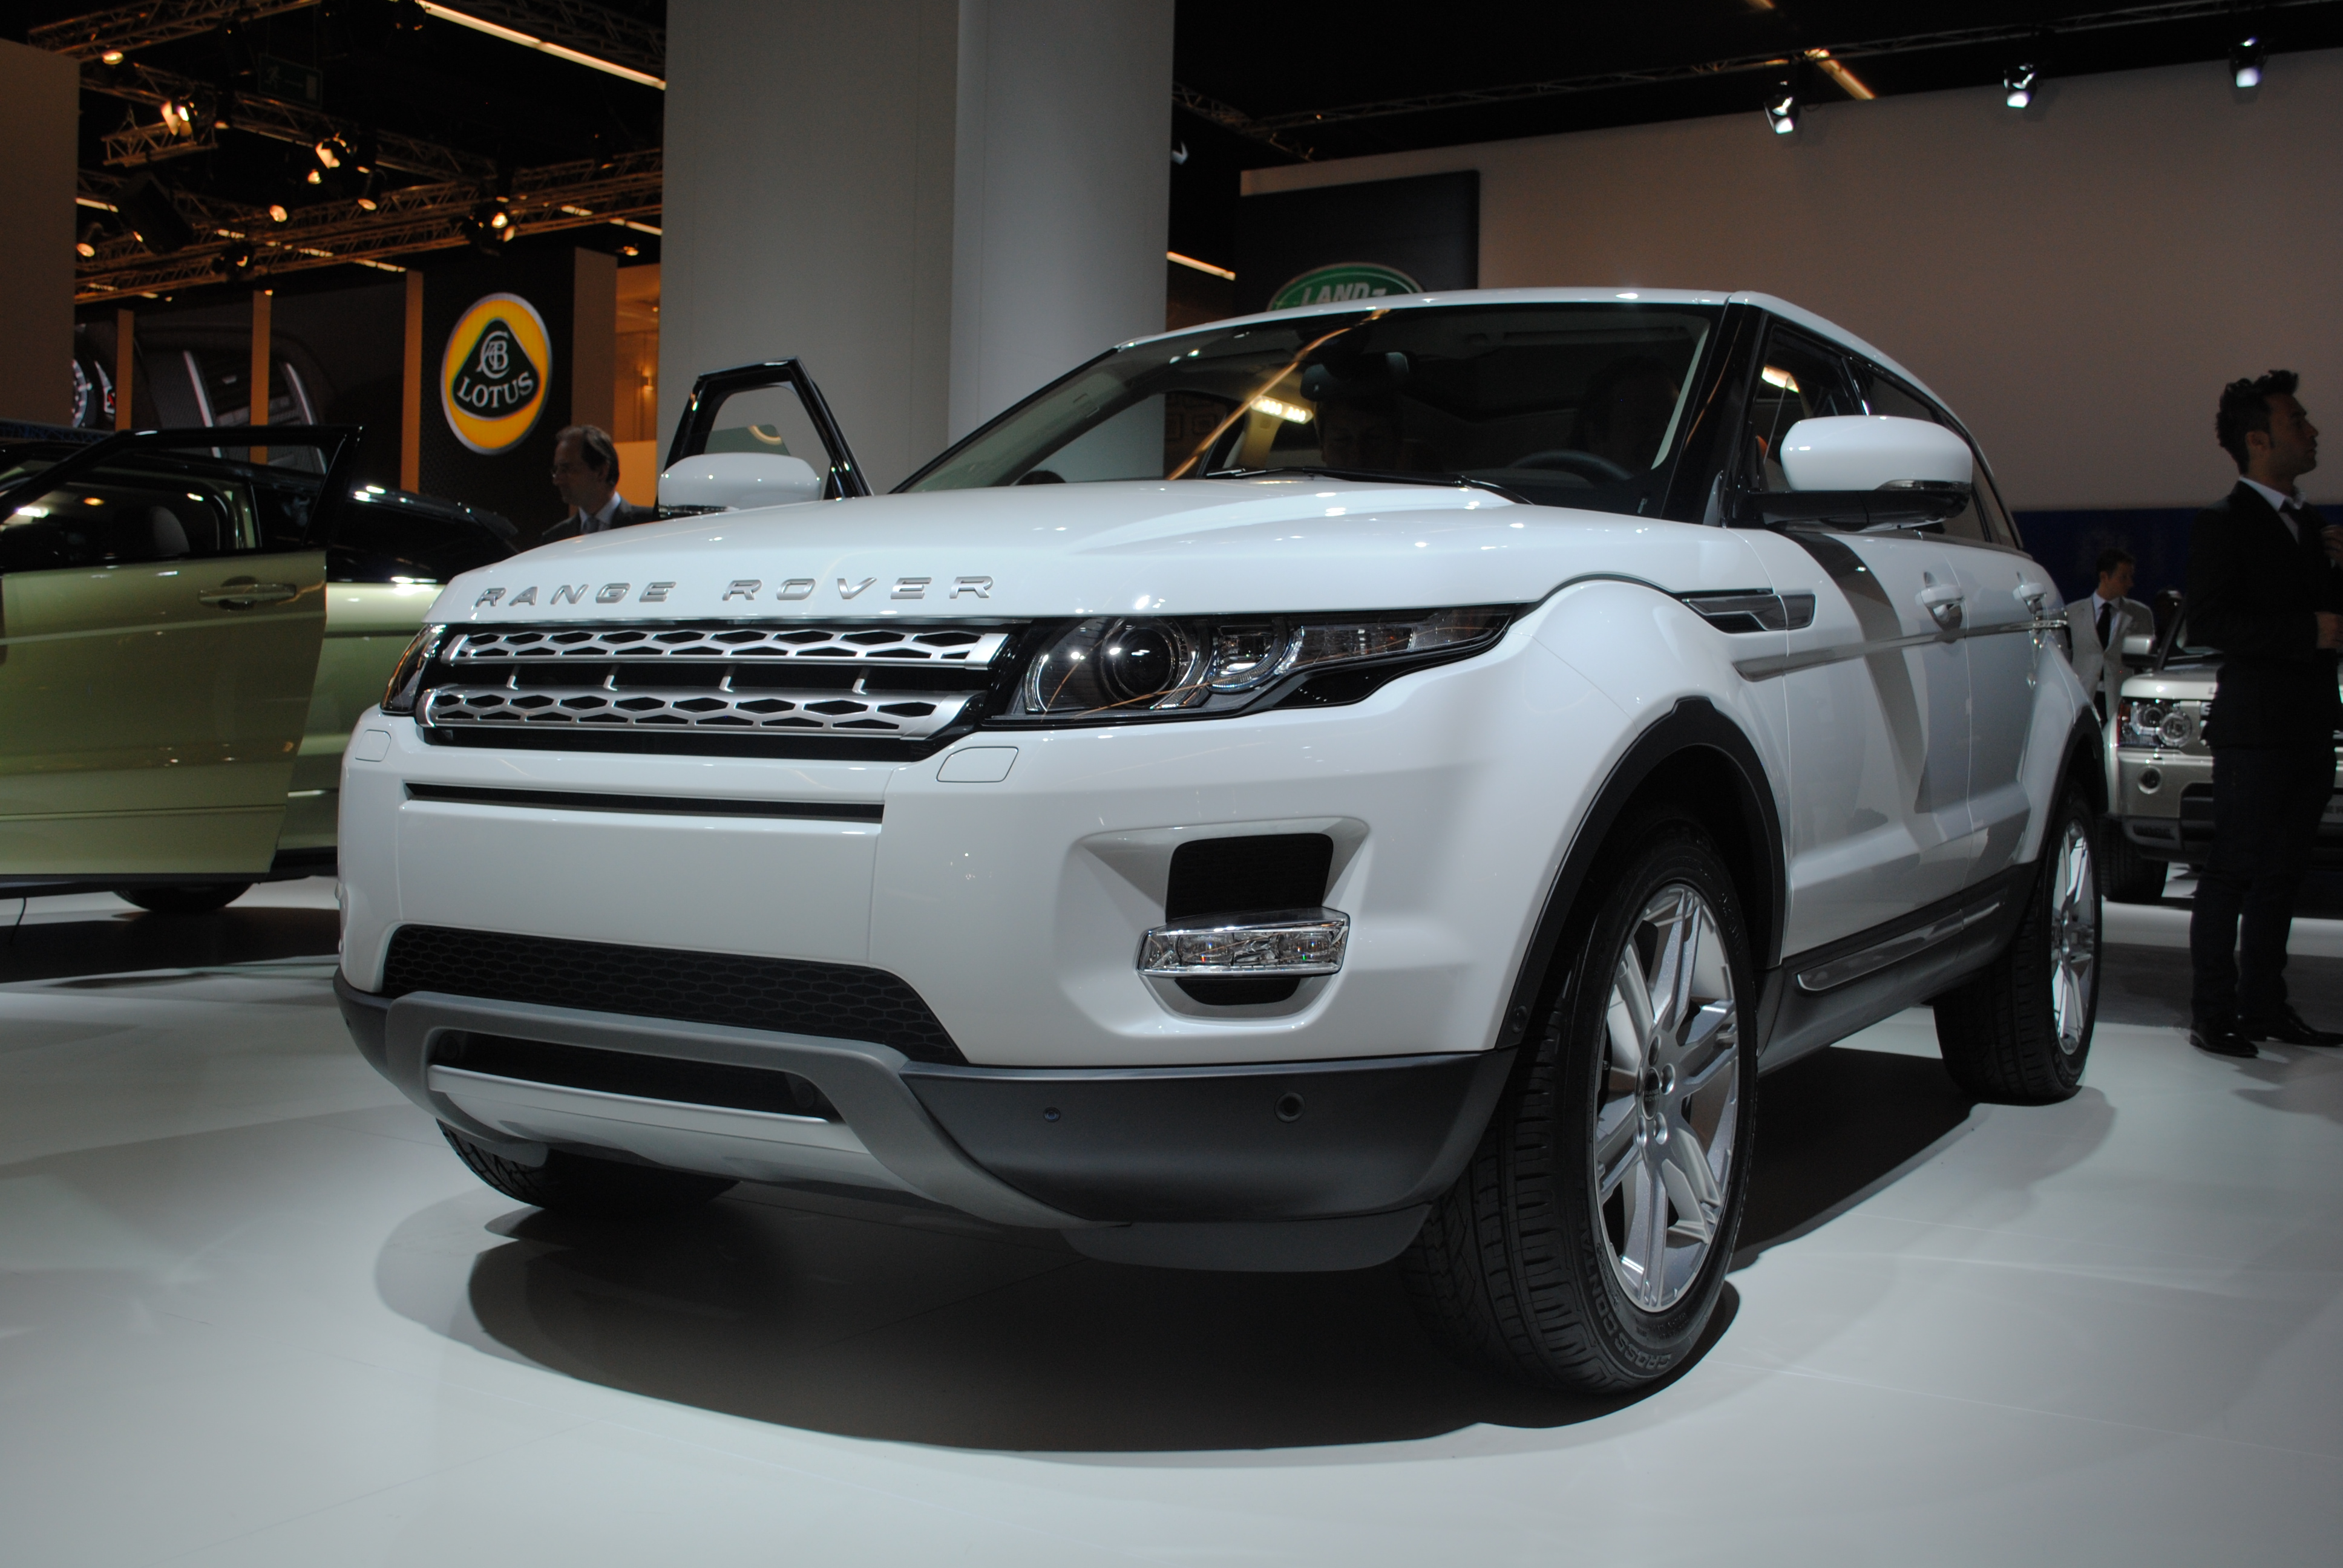 https://upload.wikimedia.org/wikipedia/commons/a/a3/Land_Rover_Range_Rover_Evoque_SD4_at_the_Frankfurt_Motor_Show_IAA_2011_%286149794390%29.jpg